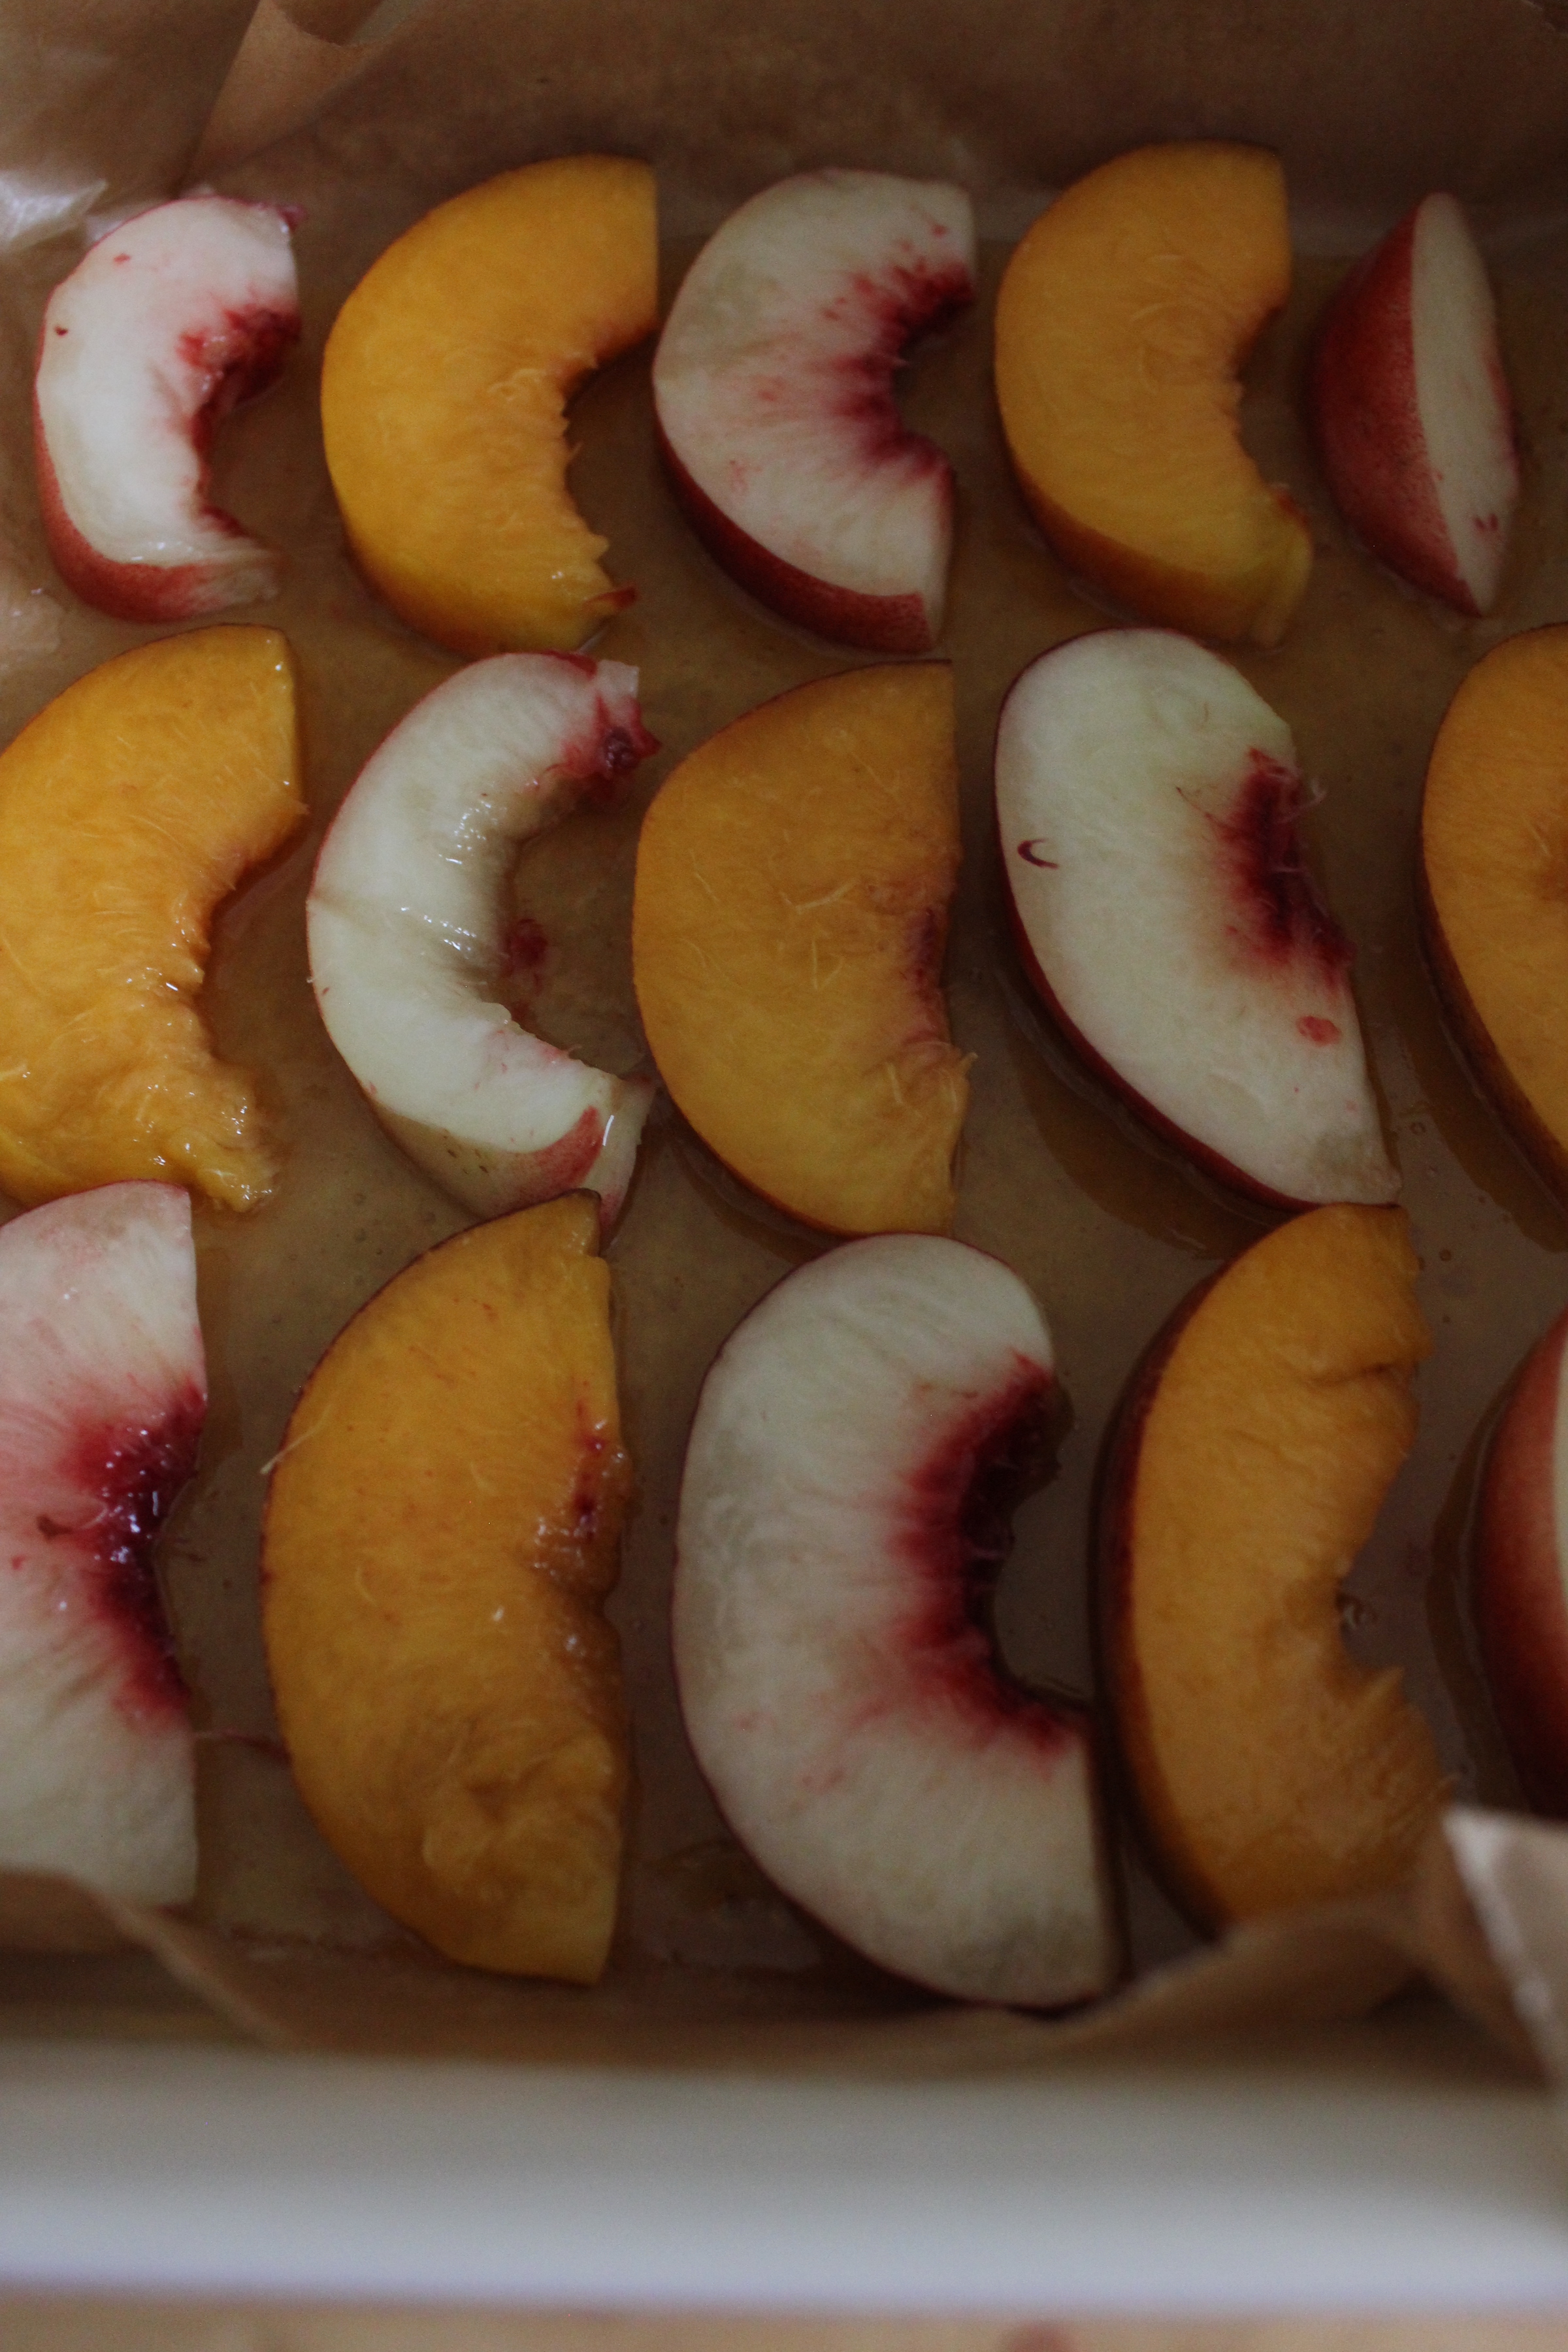 Nectarine upside down cake with salted caramel